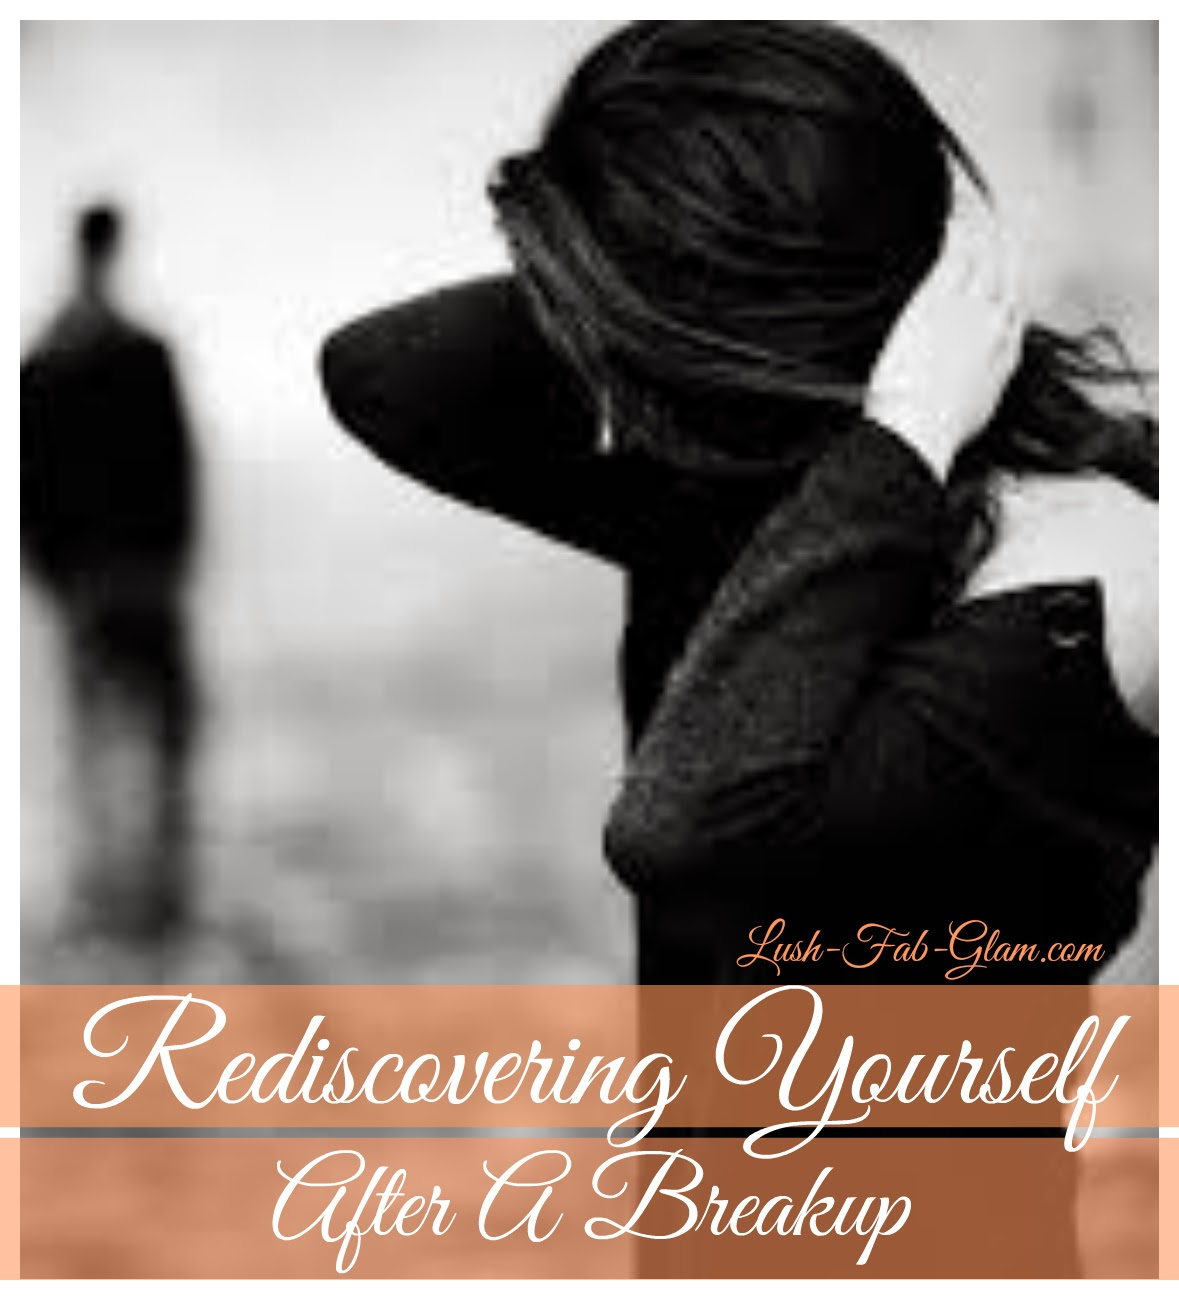 http://www.lush-fab-glam.com/2014/10/Rediscovering-Yourself-After-A-Breakup.html